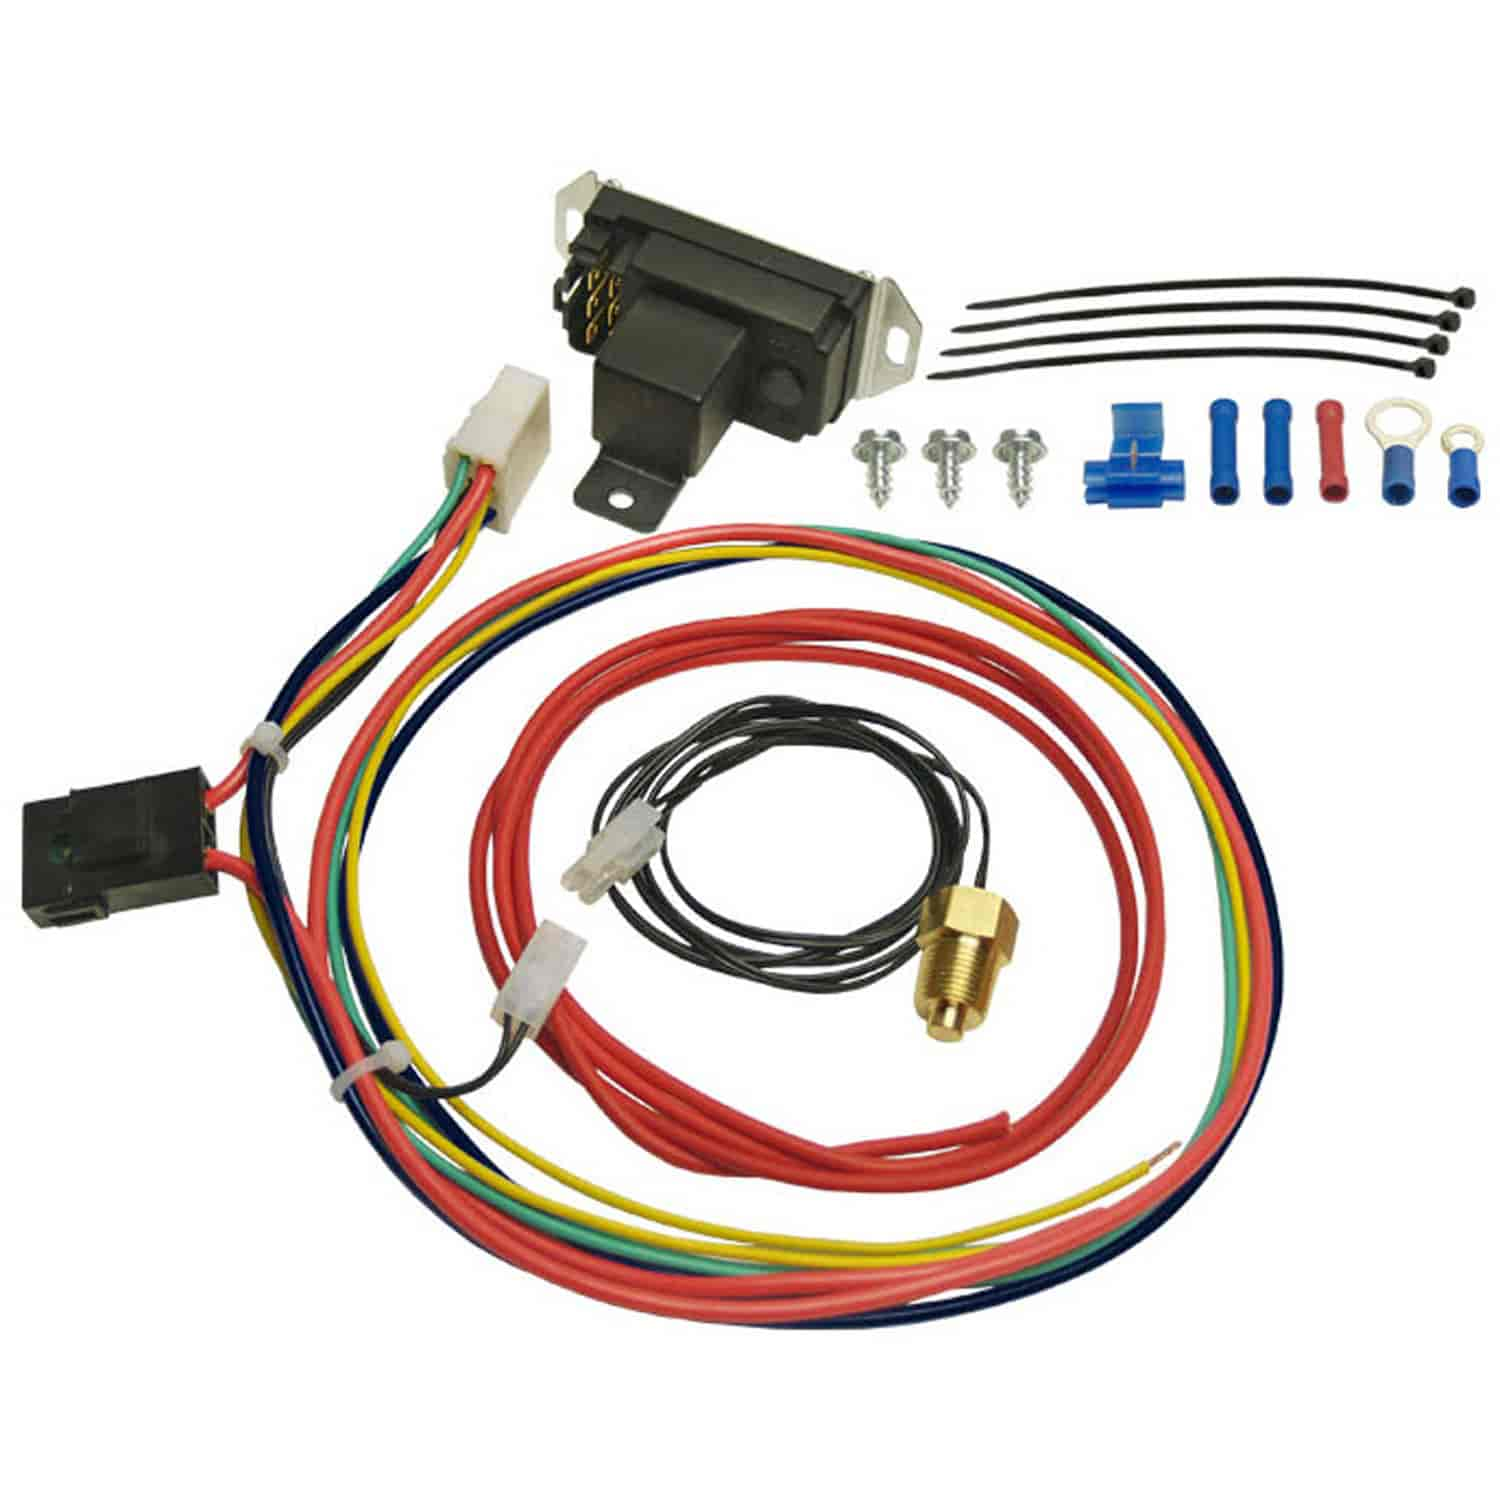 259 16749_1 jegs hot rod wiring harness wiring diagrams VW Wiring Harness Kits at gsmportal.co